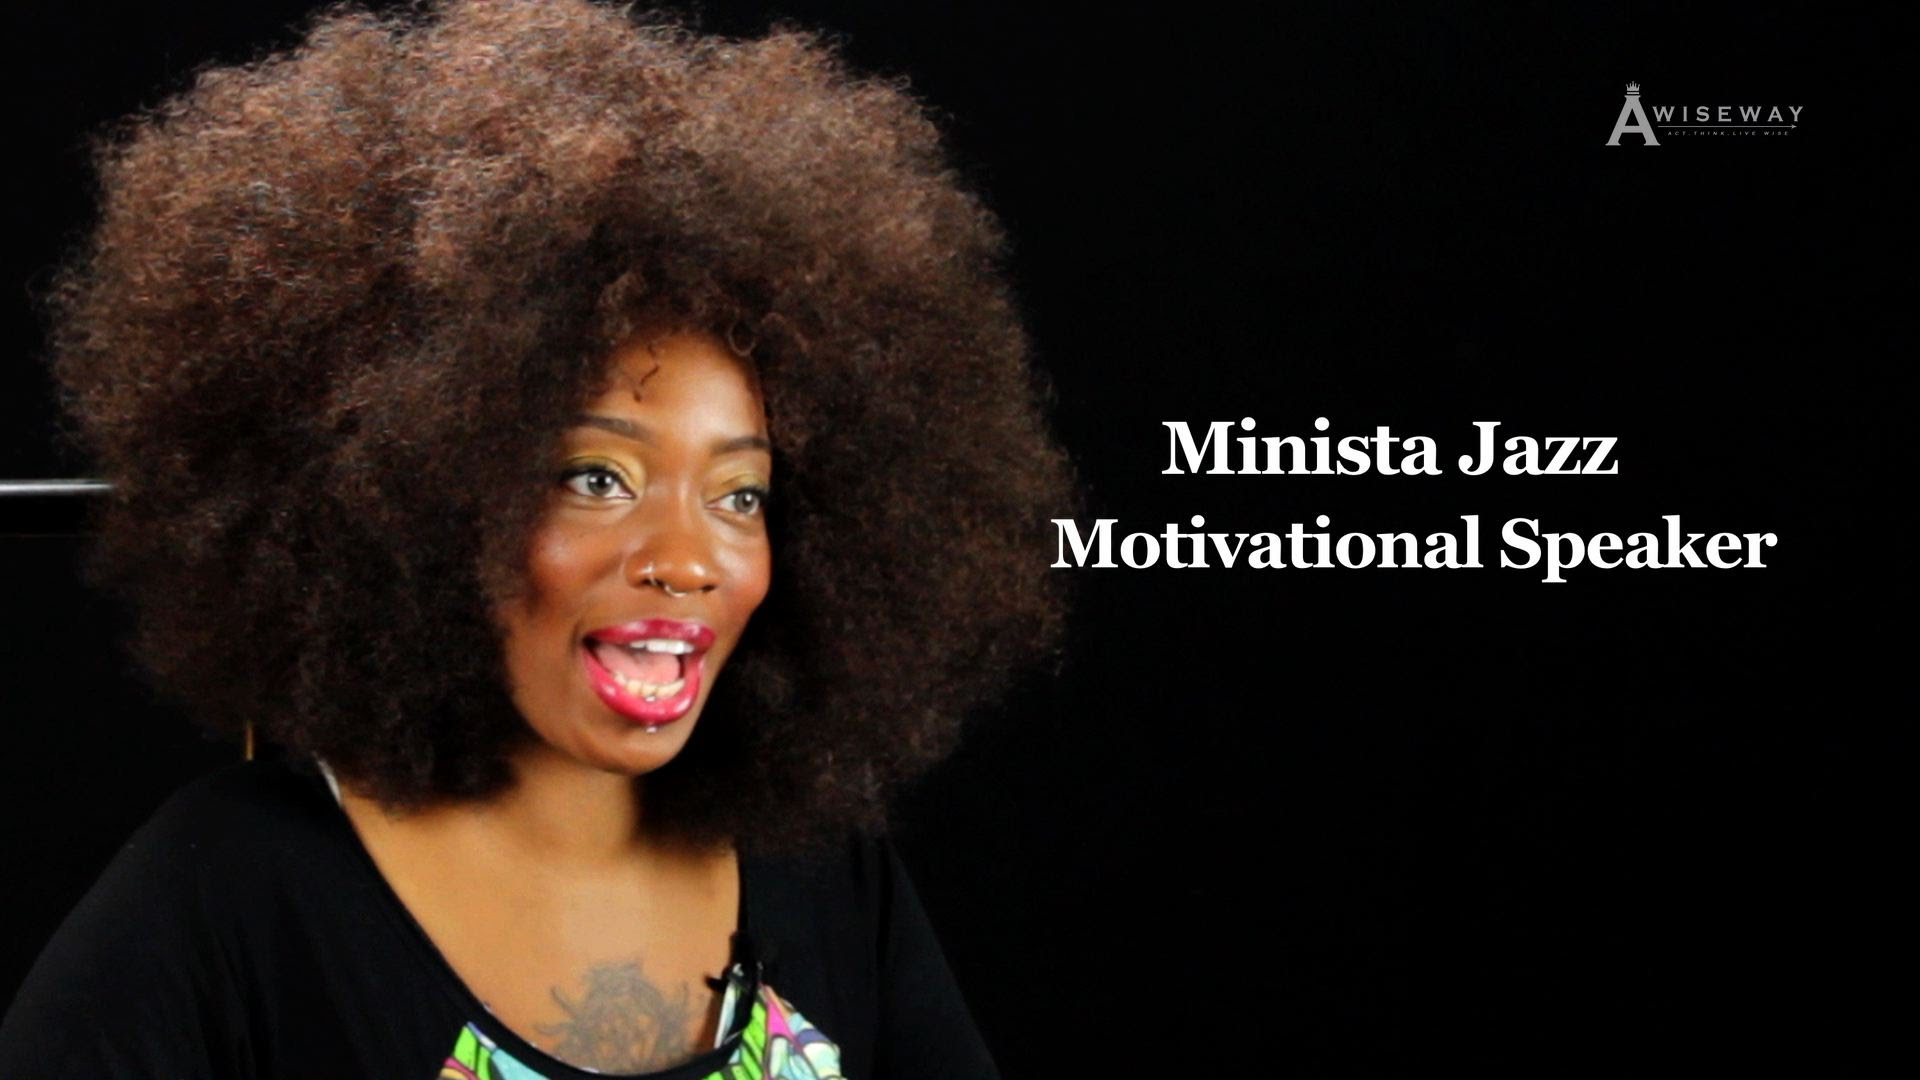 Motivational Speaker Says She Uses Music as Another Platform to Help People